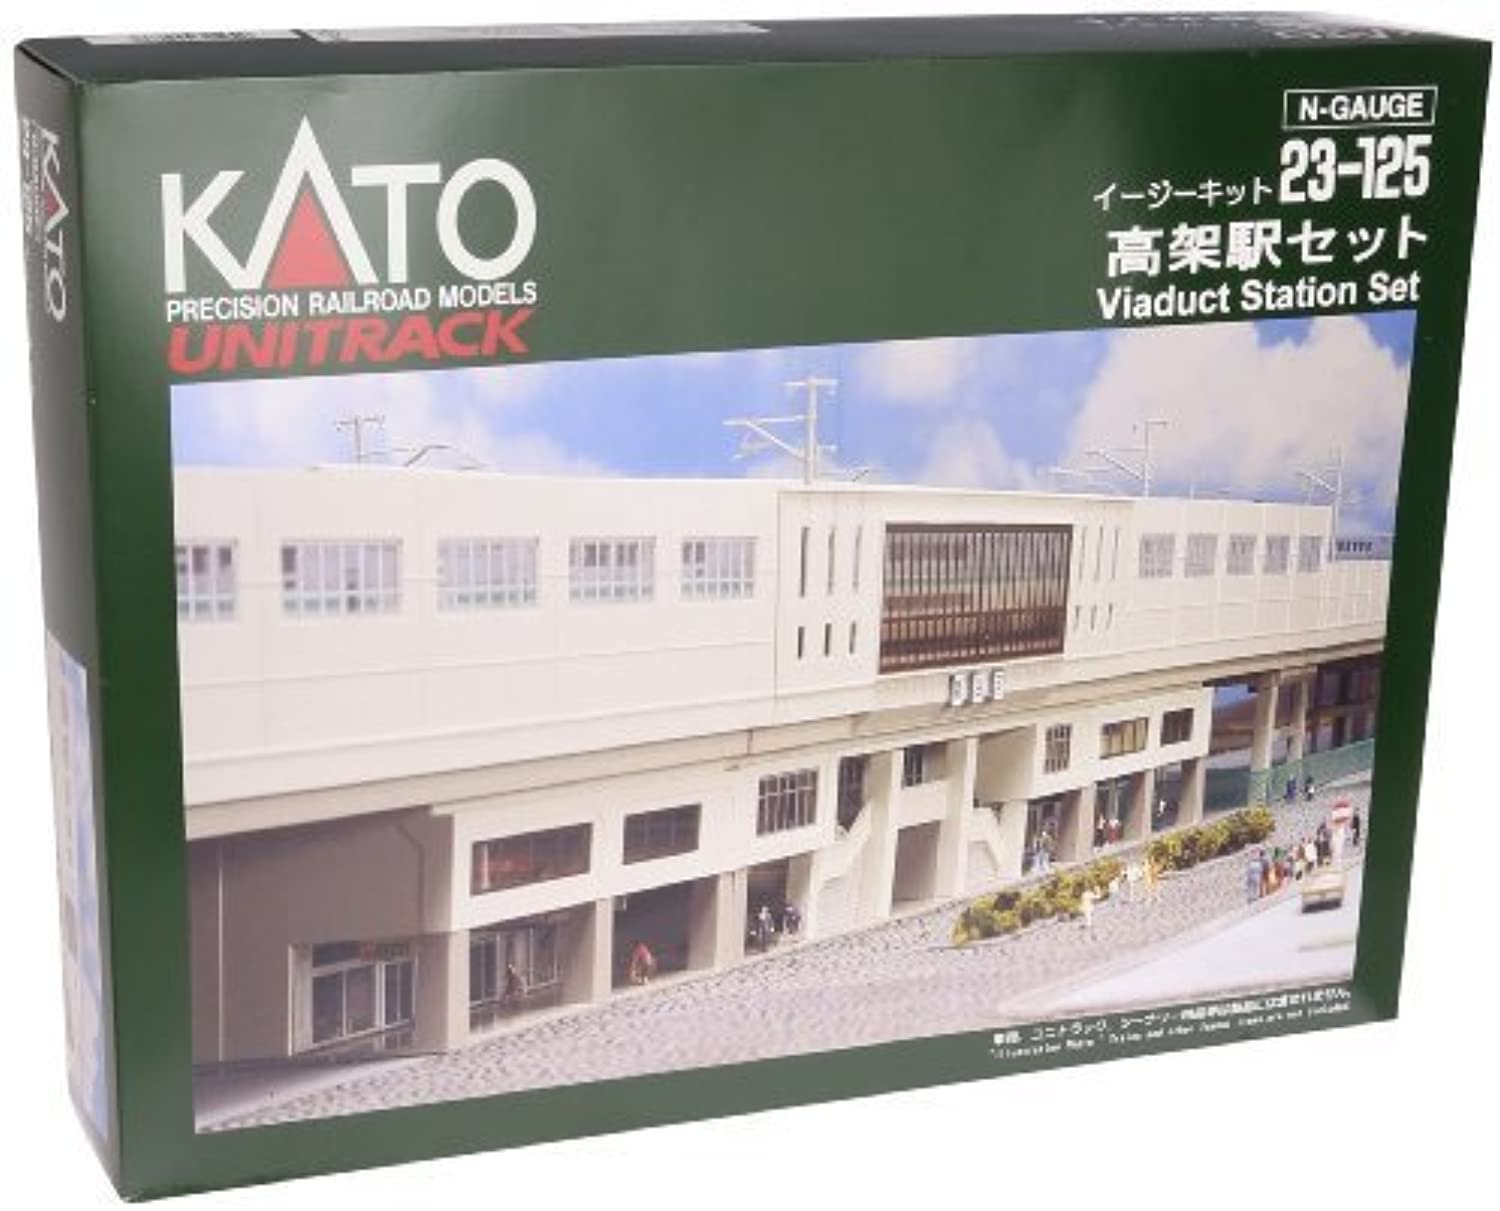 Kato 23-125 Viaduct Station Set by Kato